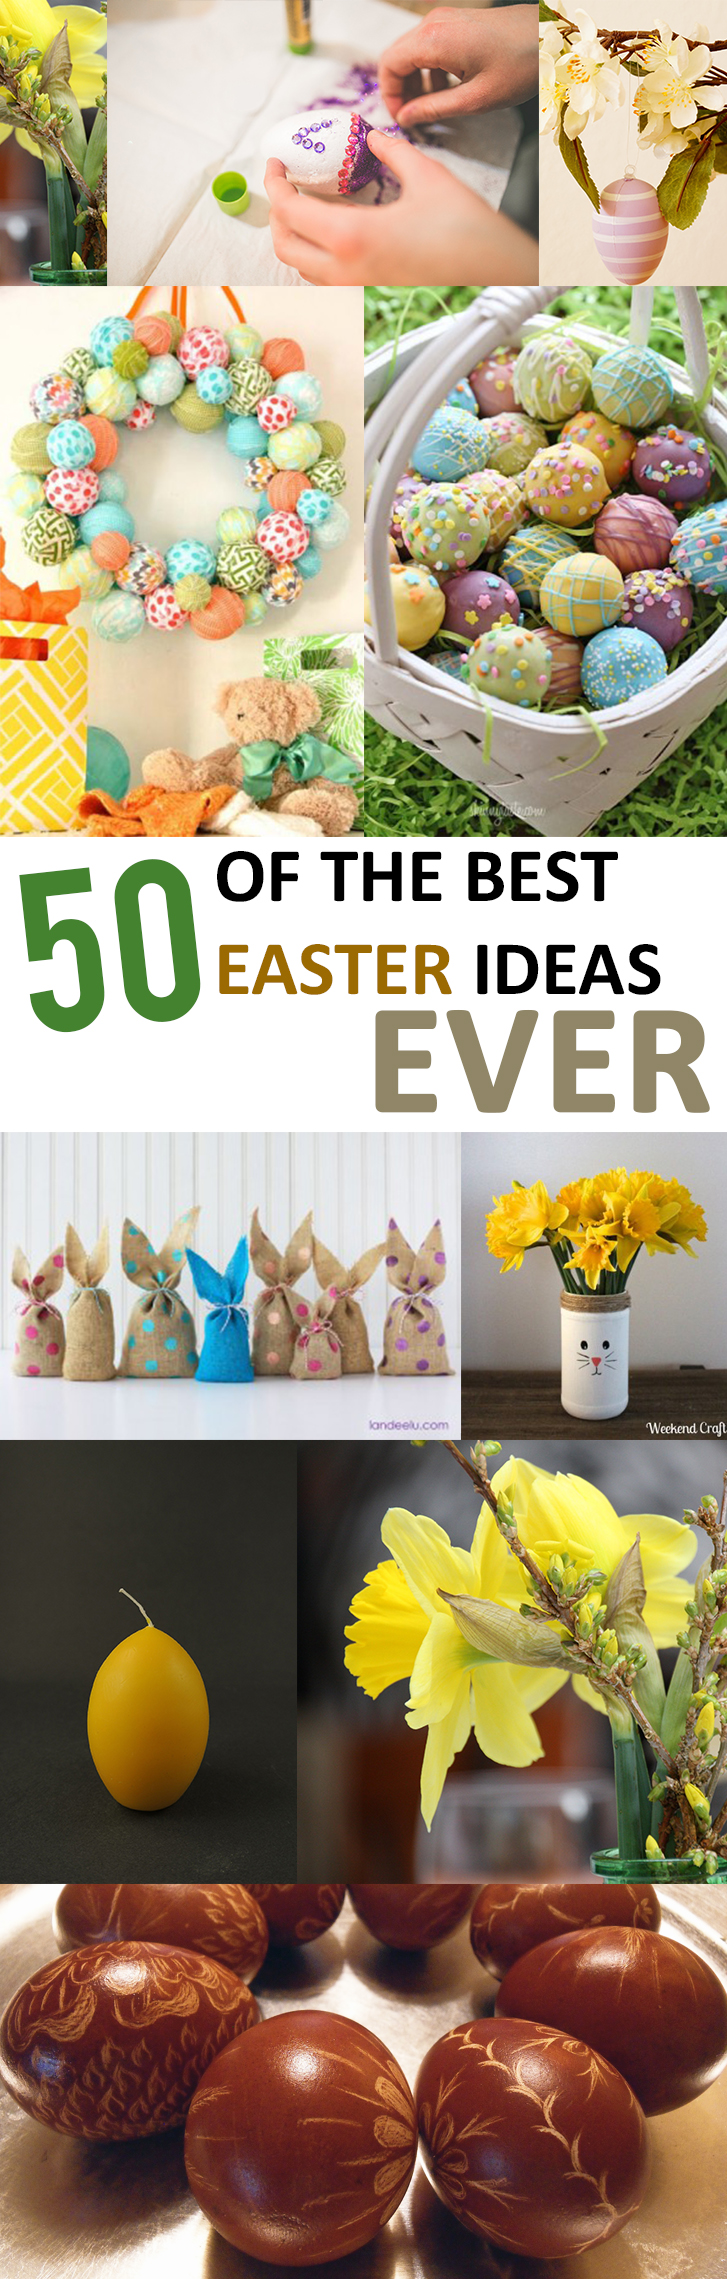 50 of the Best Easter Ideas Ever (1)